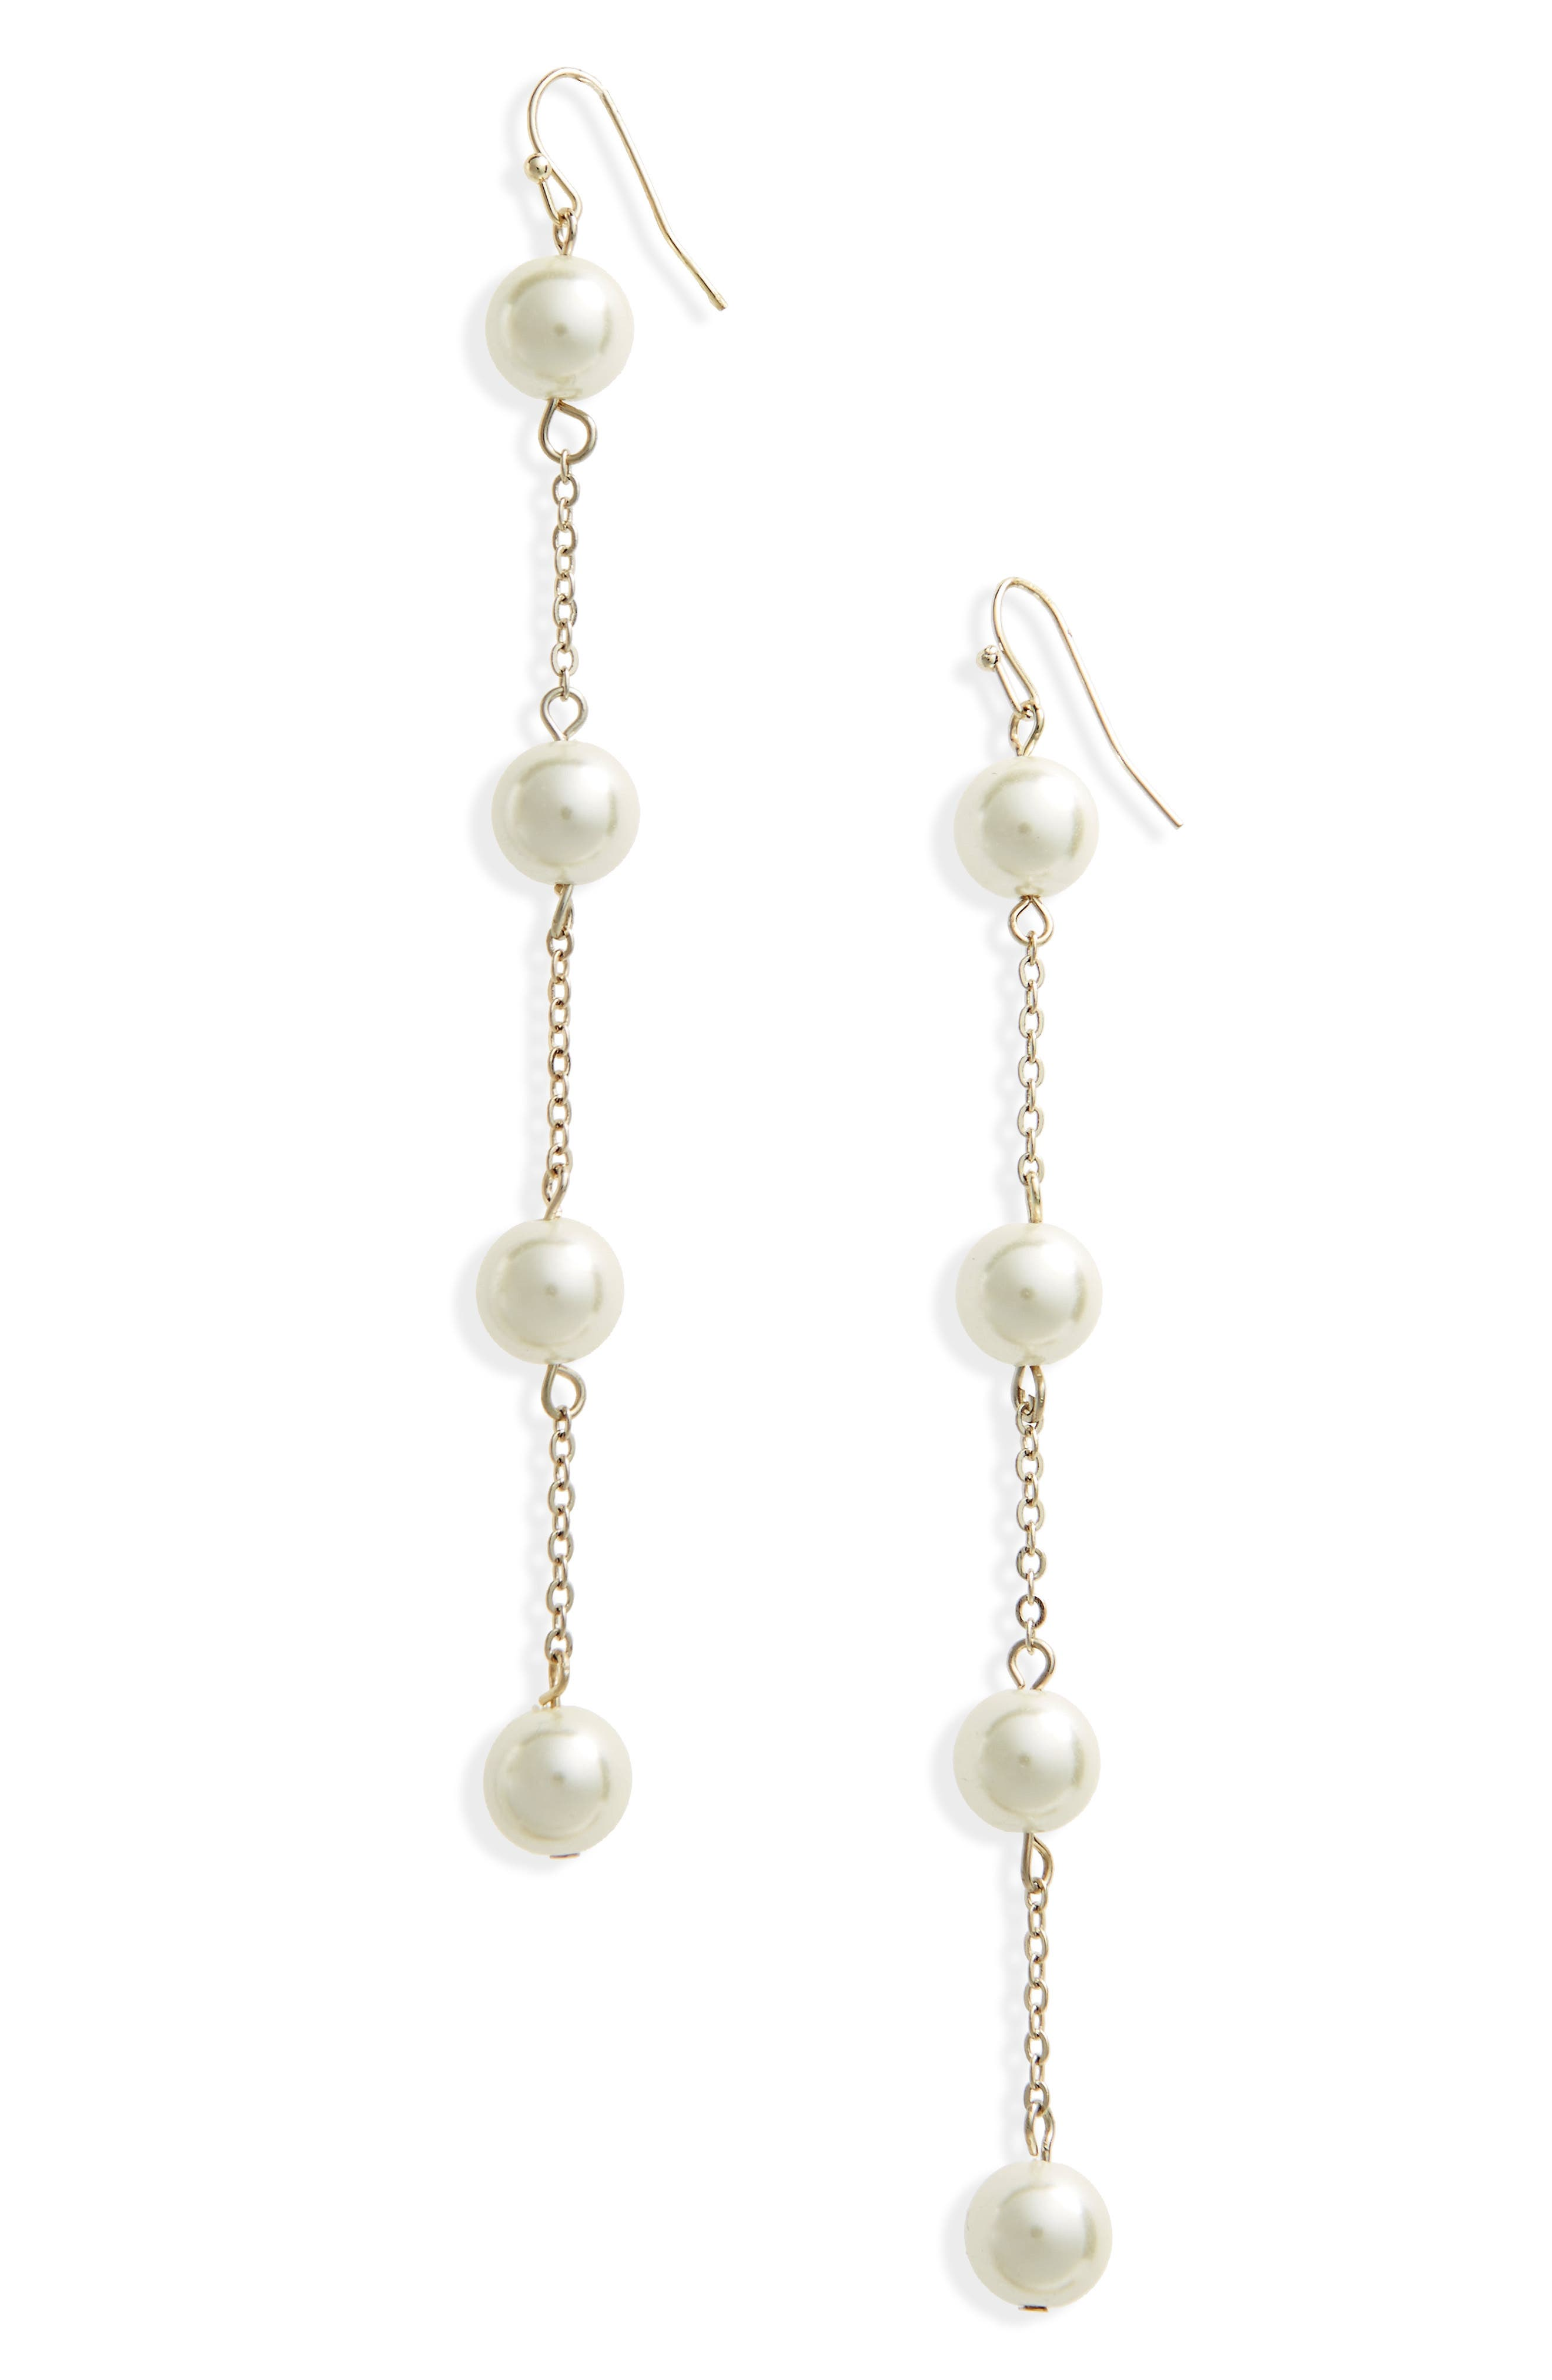 Imitation Pearl Drop Earrings,                             Main thumbnail 1, color,                             101